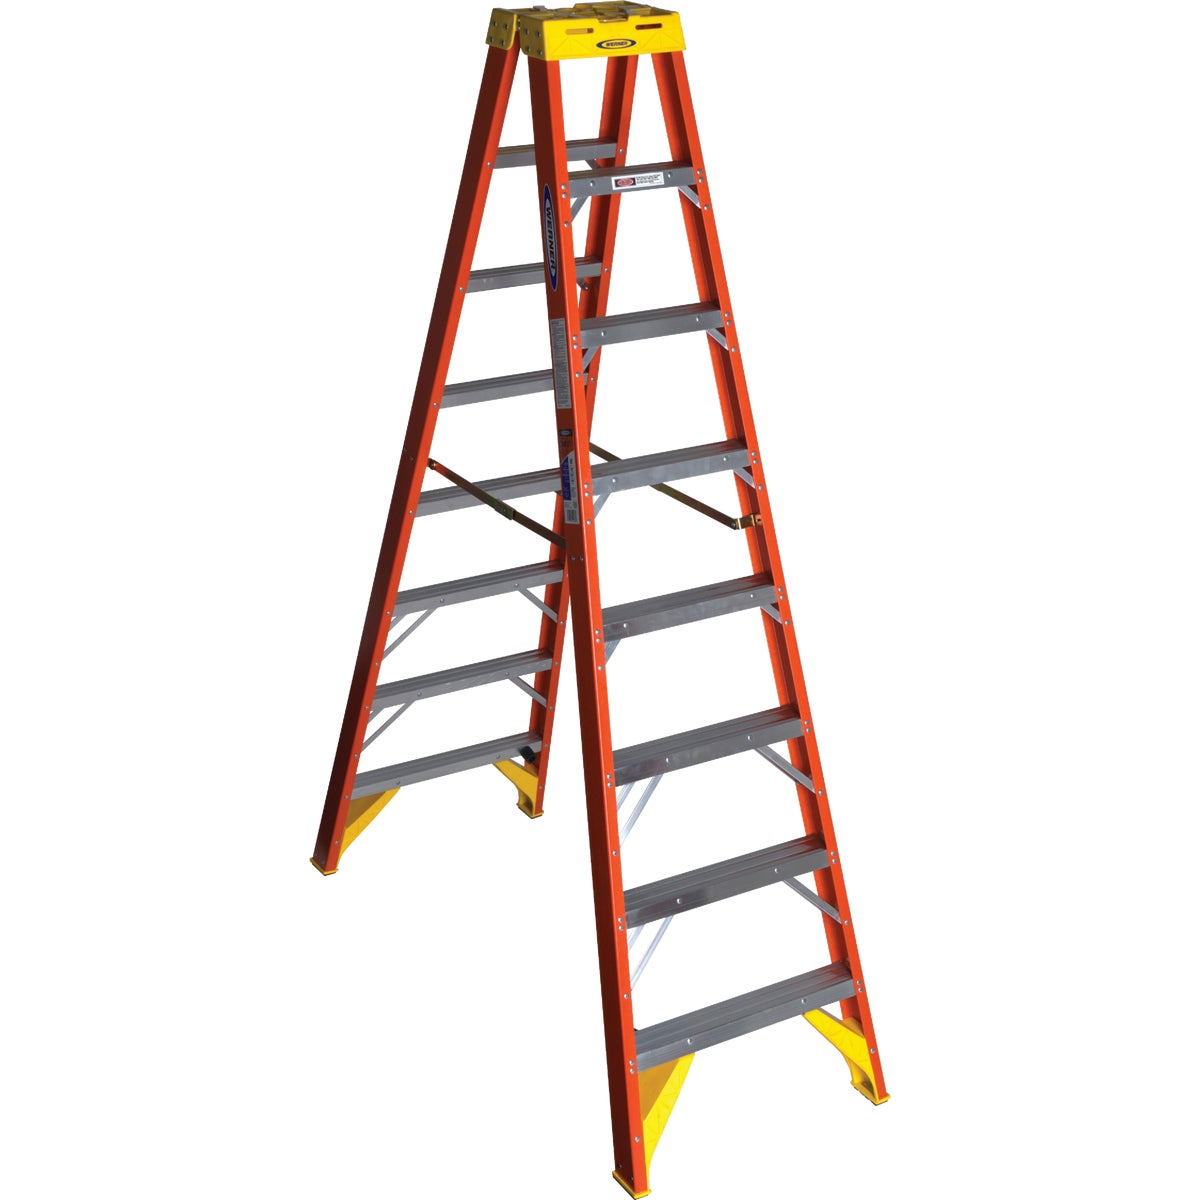 T-1A 8' TWIN STEPLADDER